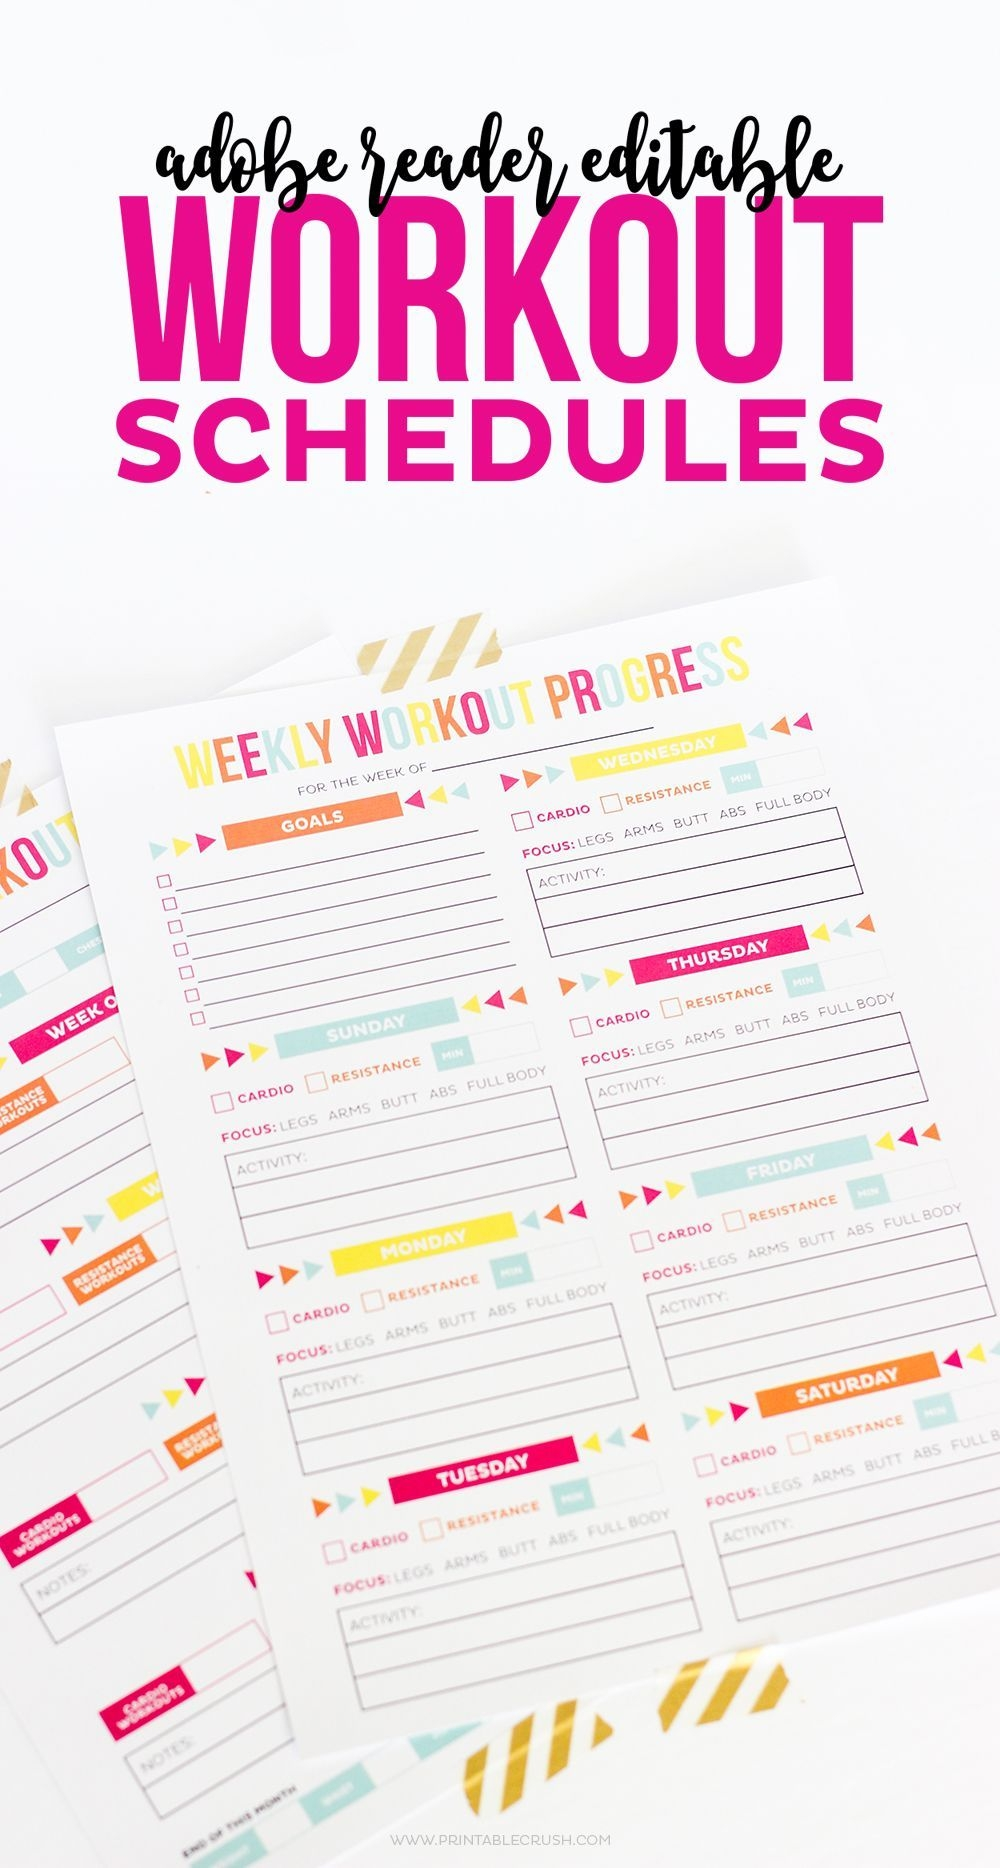 Editable Printable Workout Schedule (With Images